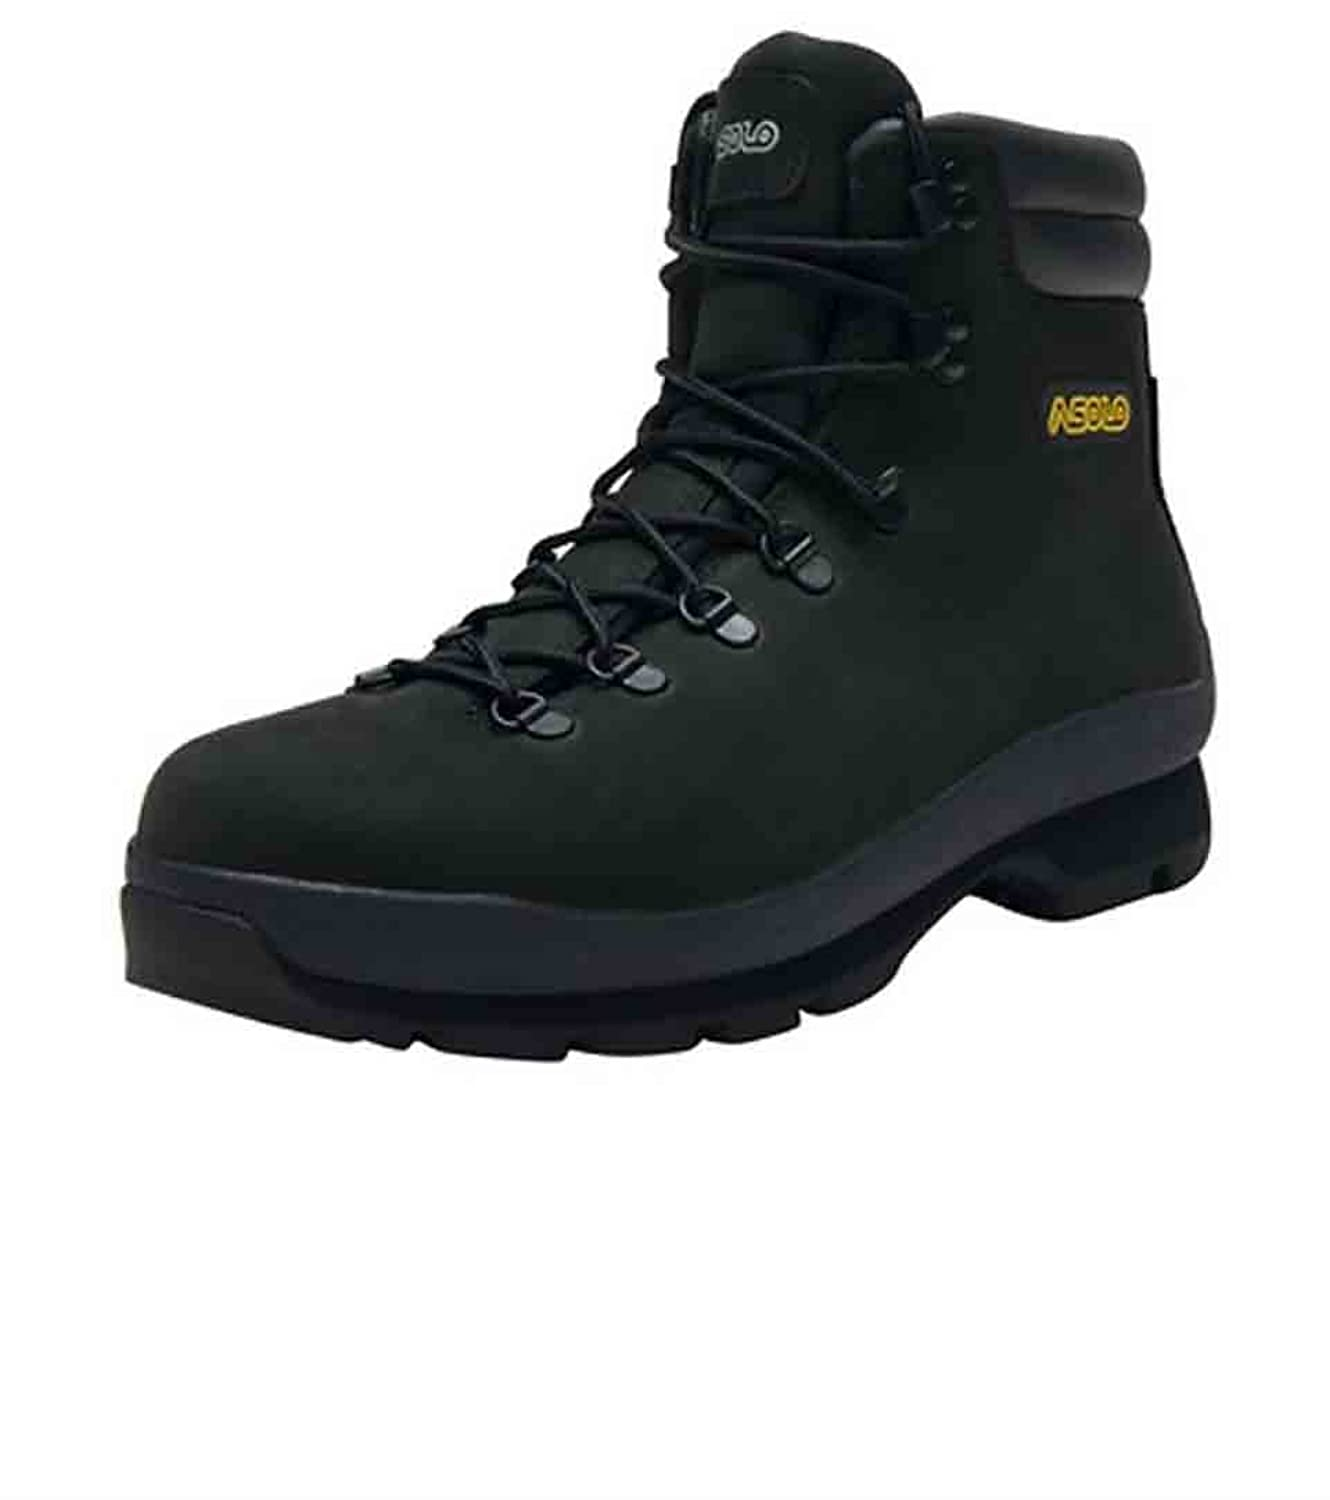 Supremacy Waterproof Boots (For Men) Size 8